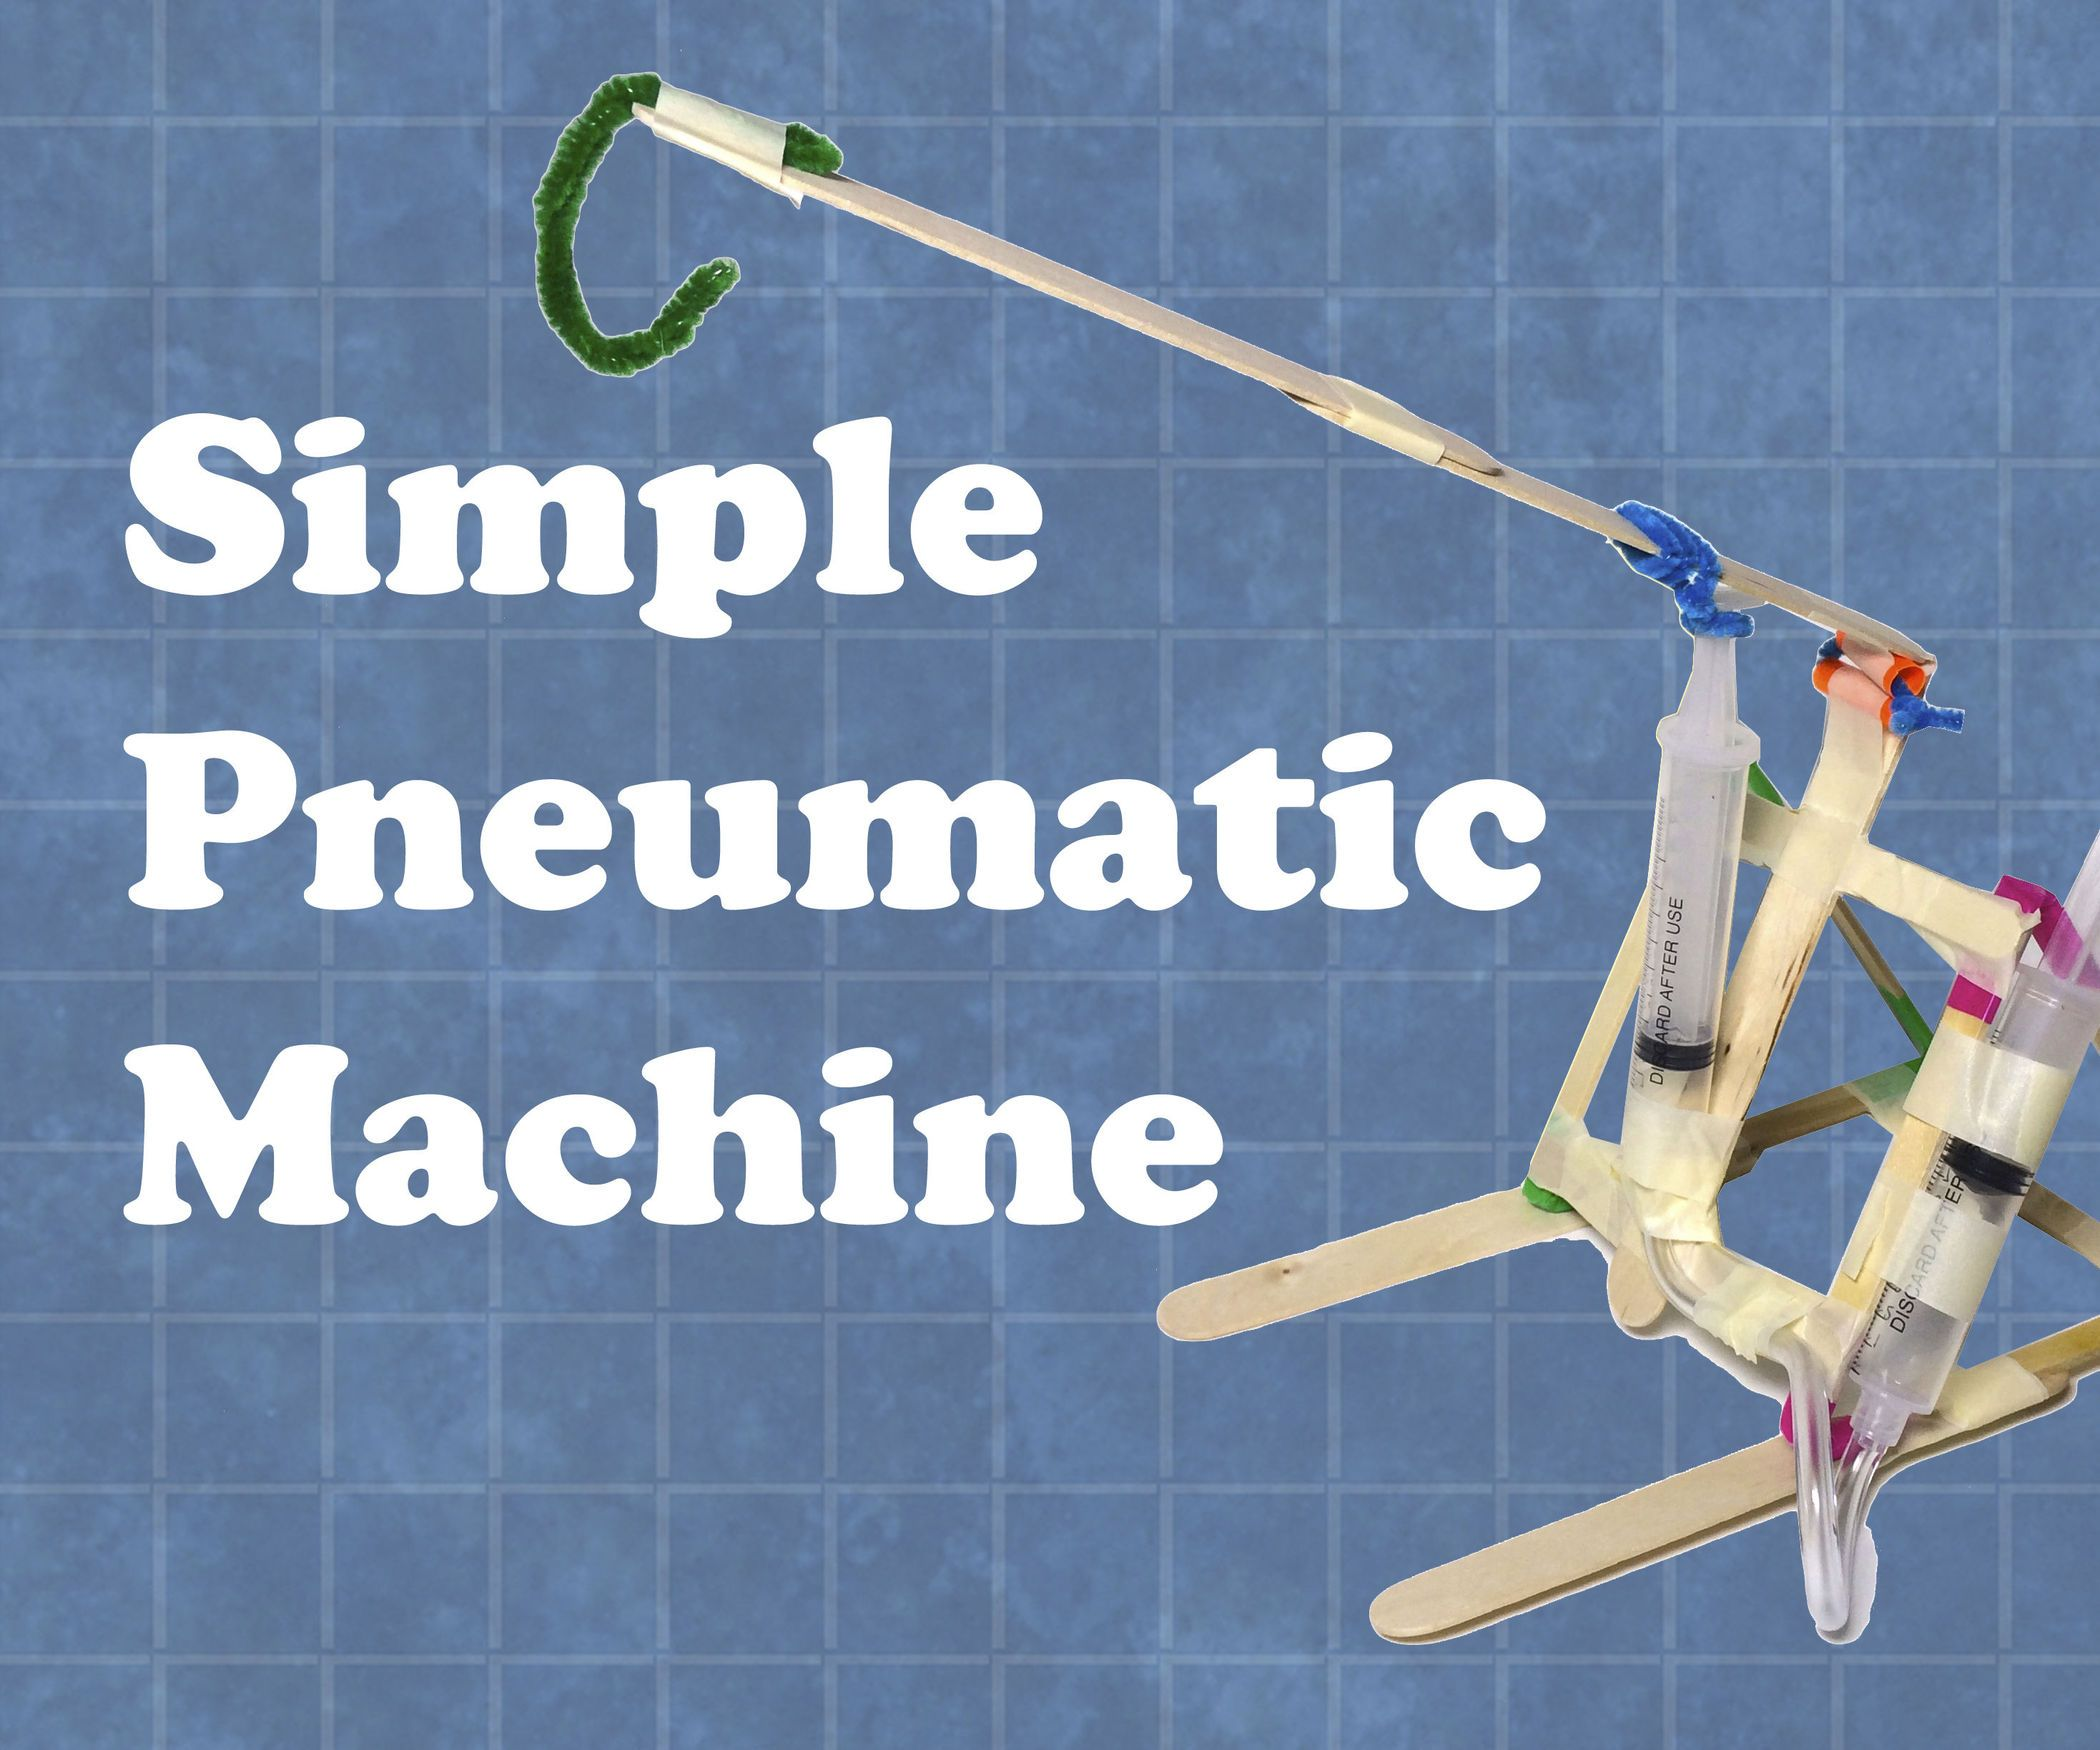 Simple Pneumatic Machine | Education | Pinterest | Engineering ...